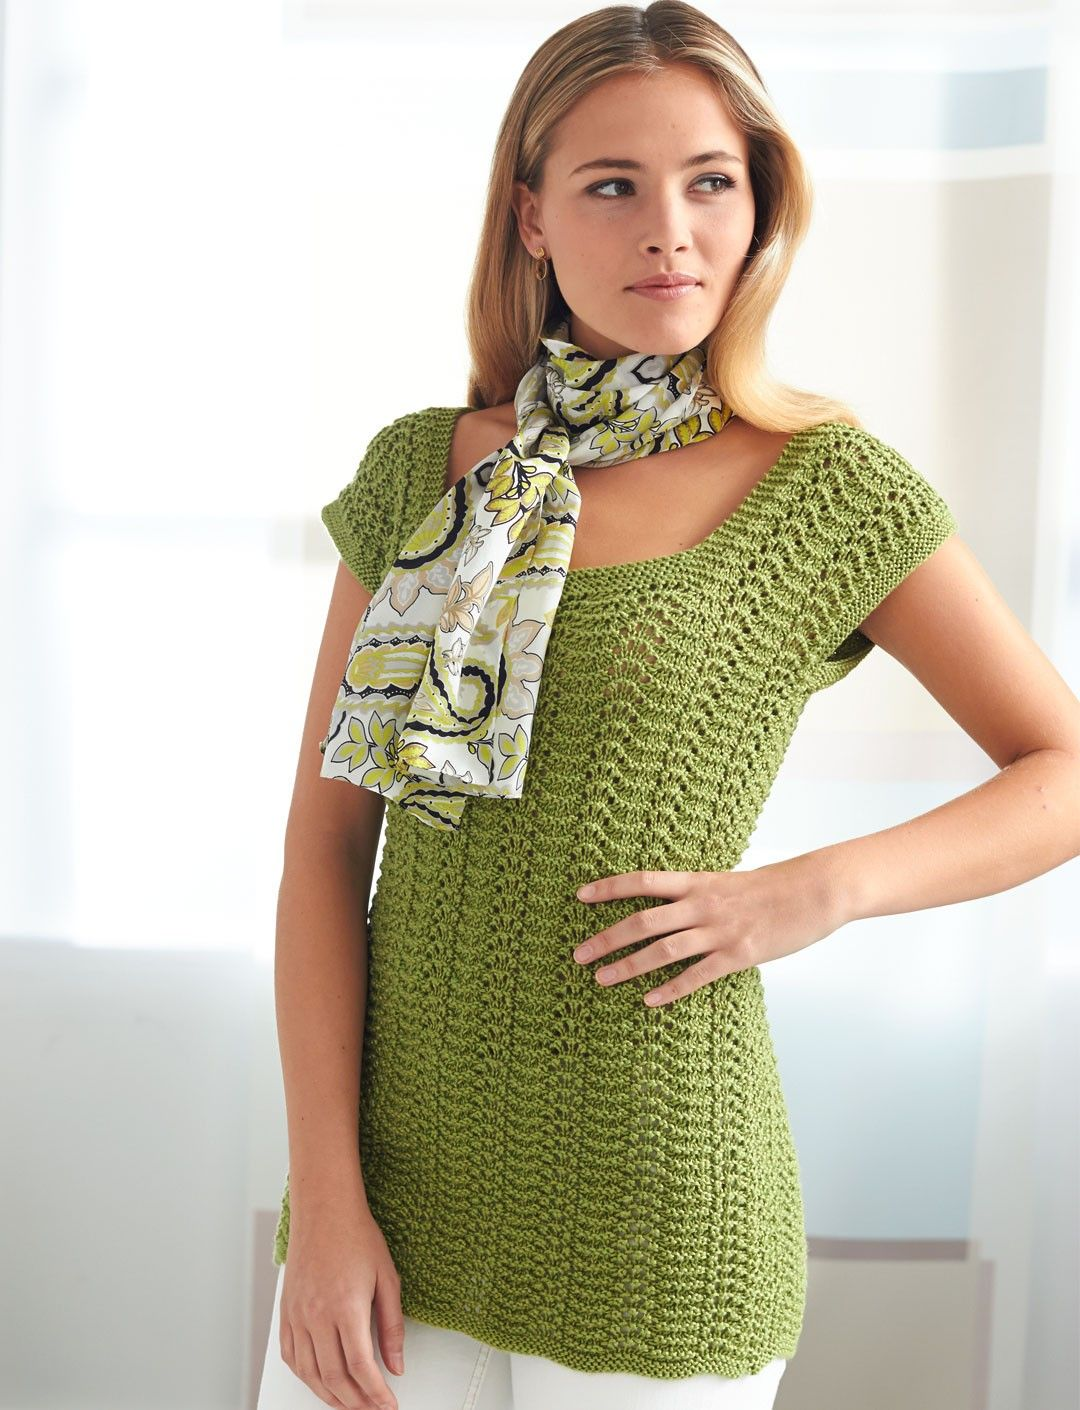 Yarnspirations.com - Patons 4 Row Feather and Fan Top - Patterns ...